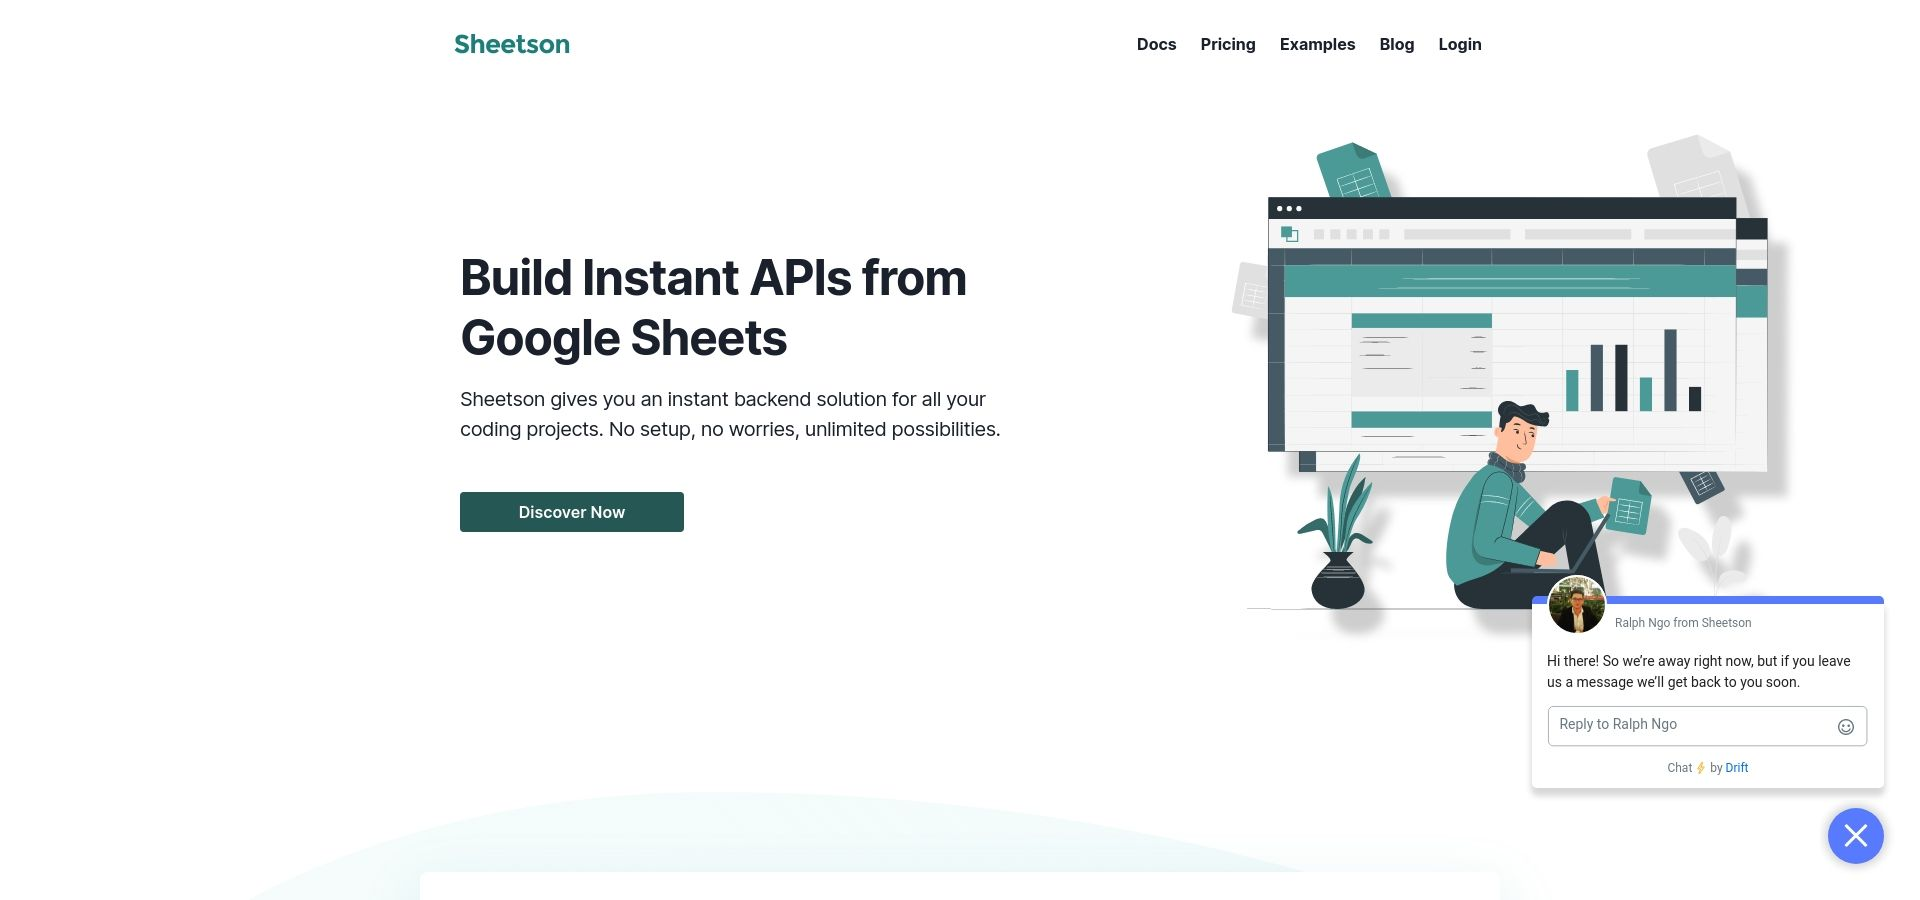 Sheetson - Build Instant APIs from Google Sheets